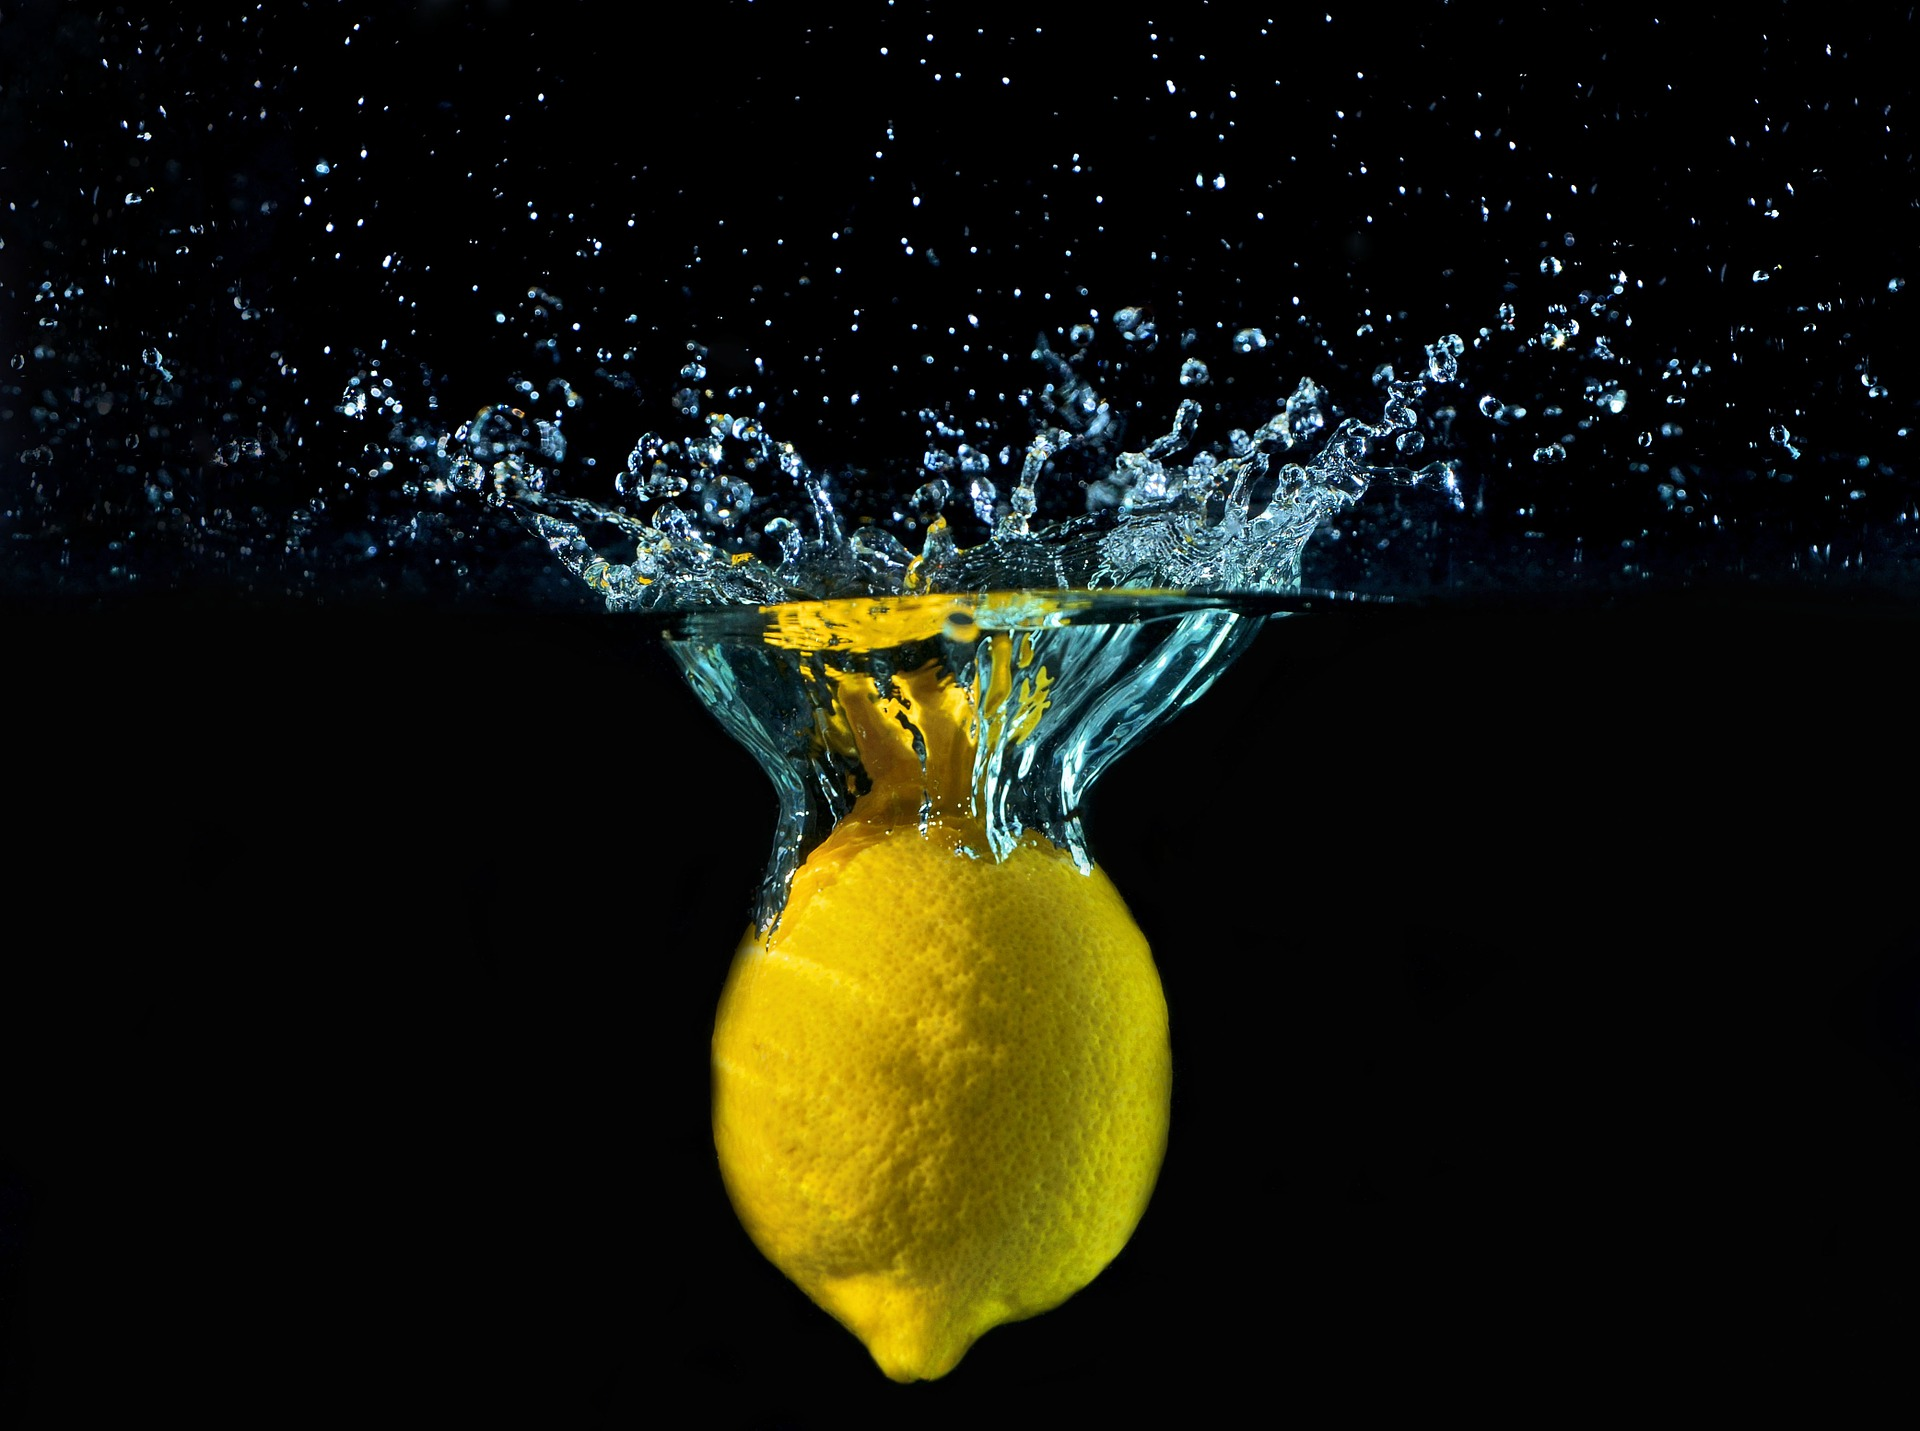 fresh produce: lemon in water